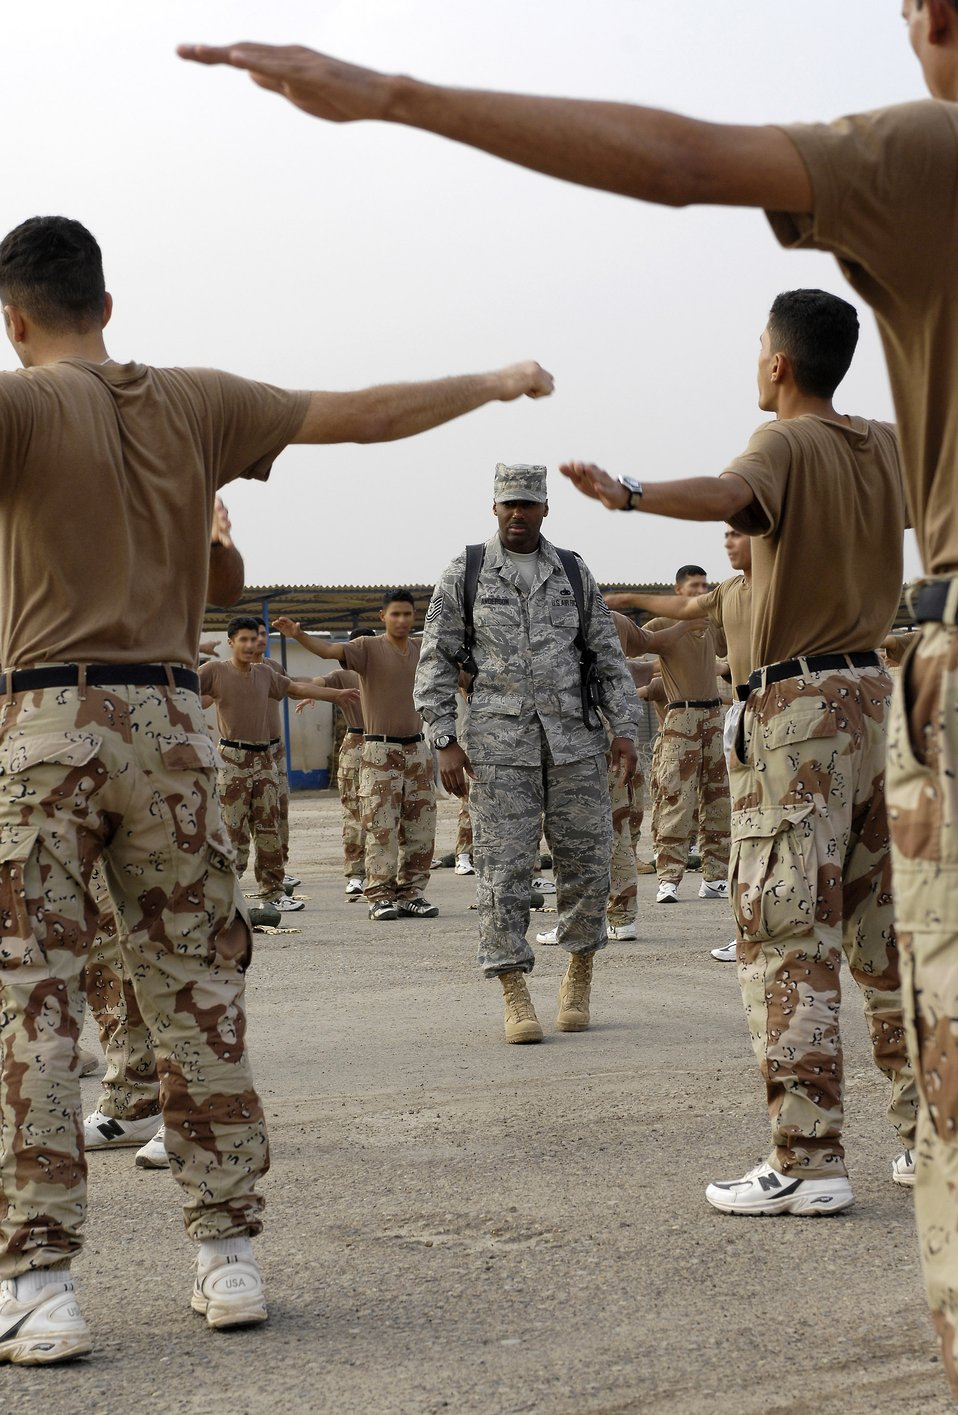 Basic training instructors help mold Iraq's future leaders